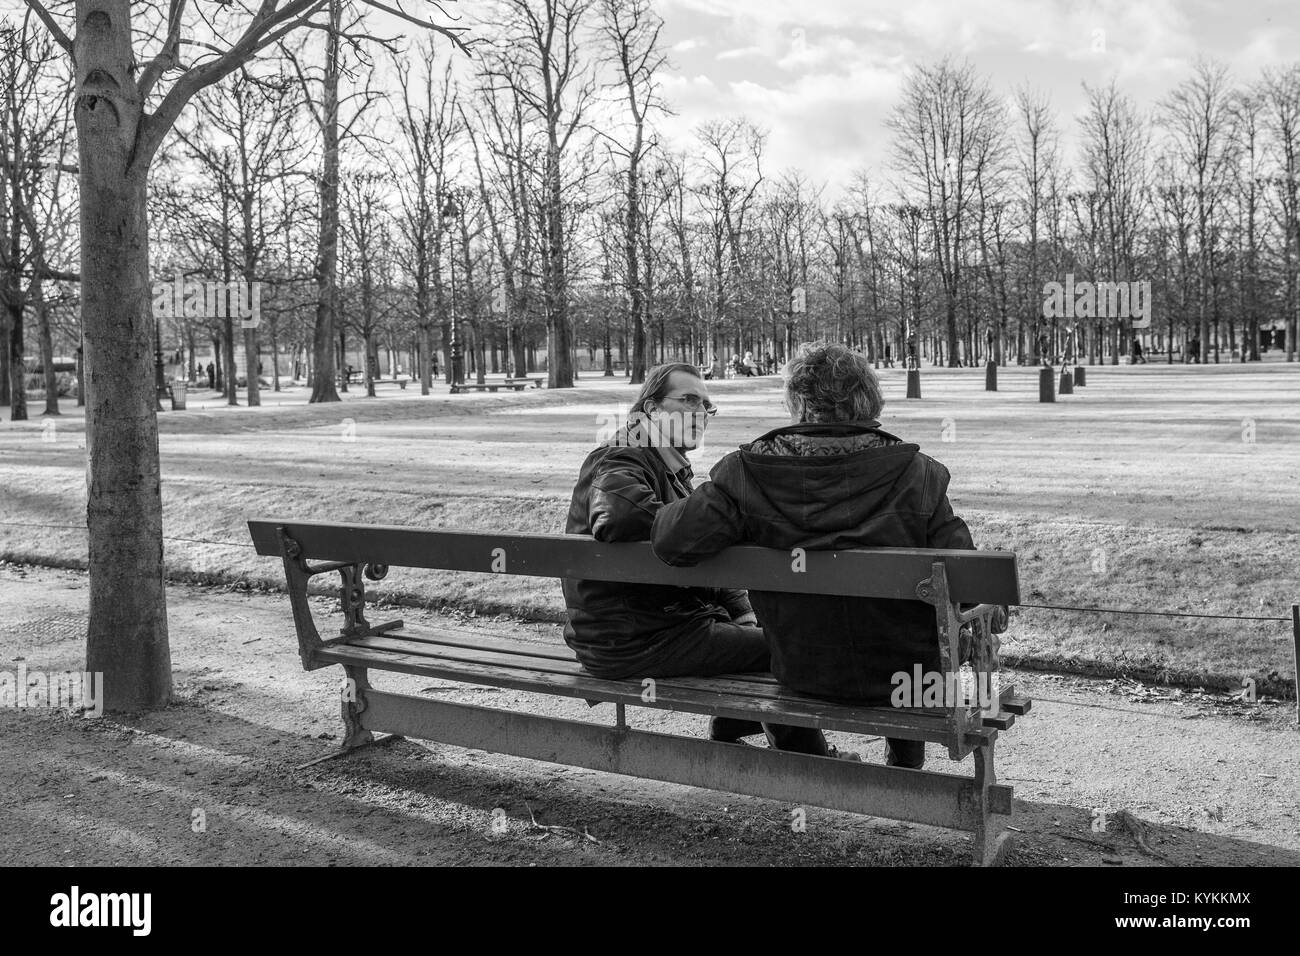 PARIS-Jan.3, 2014: Two men sit on a park bench talking on a winter day. Black and white. - Stock Image